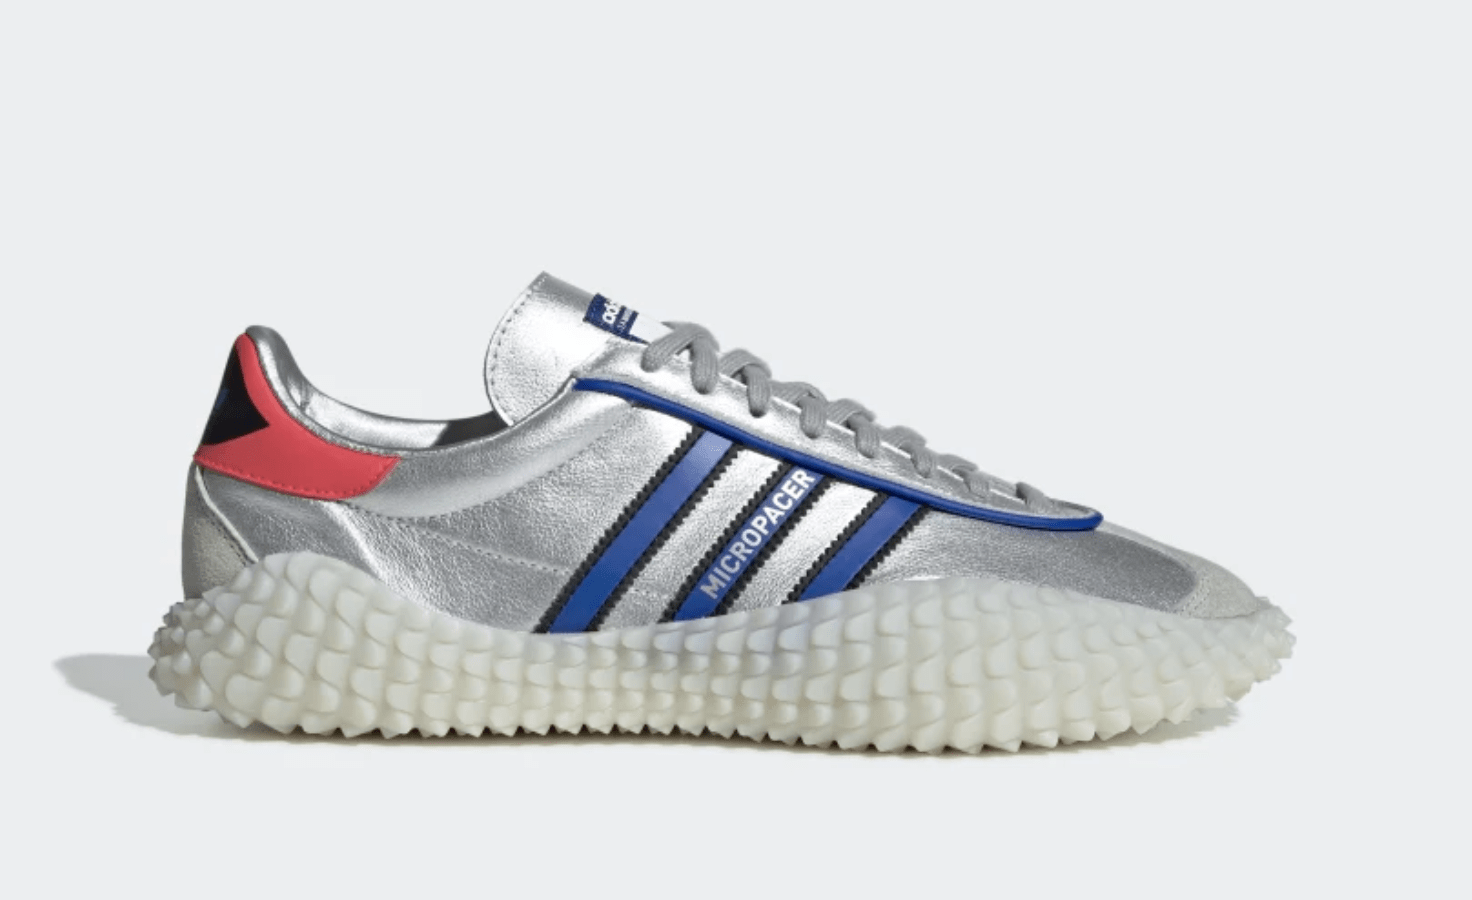 online retailer f2ac2 263f5 adidas ZX930 x EQT Release Date February 23rd, 2019. Price 170. Color  Silver MetallicPowder BlueShock Red Style Code EF5558